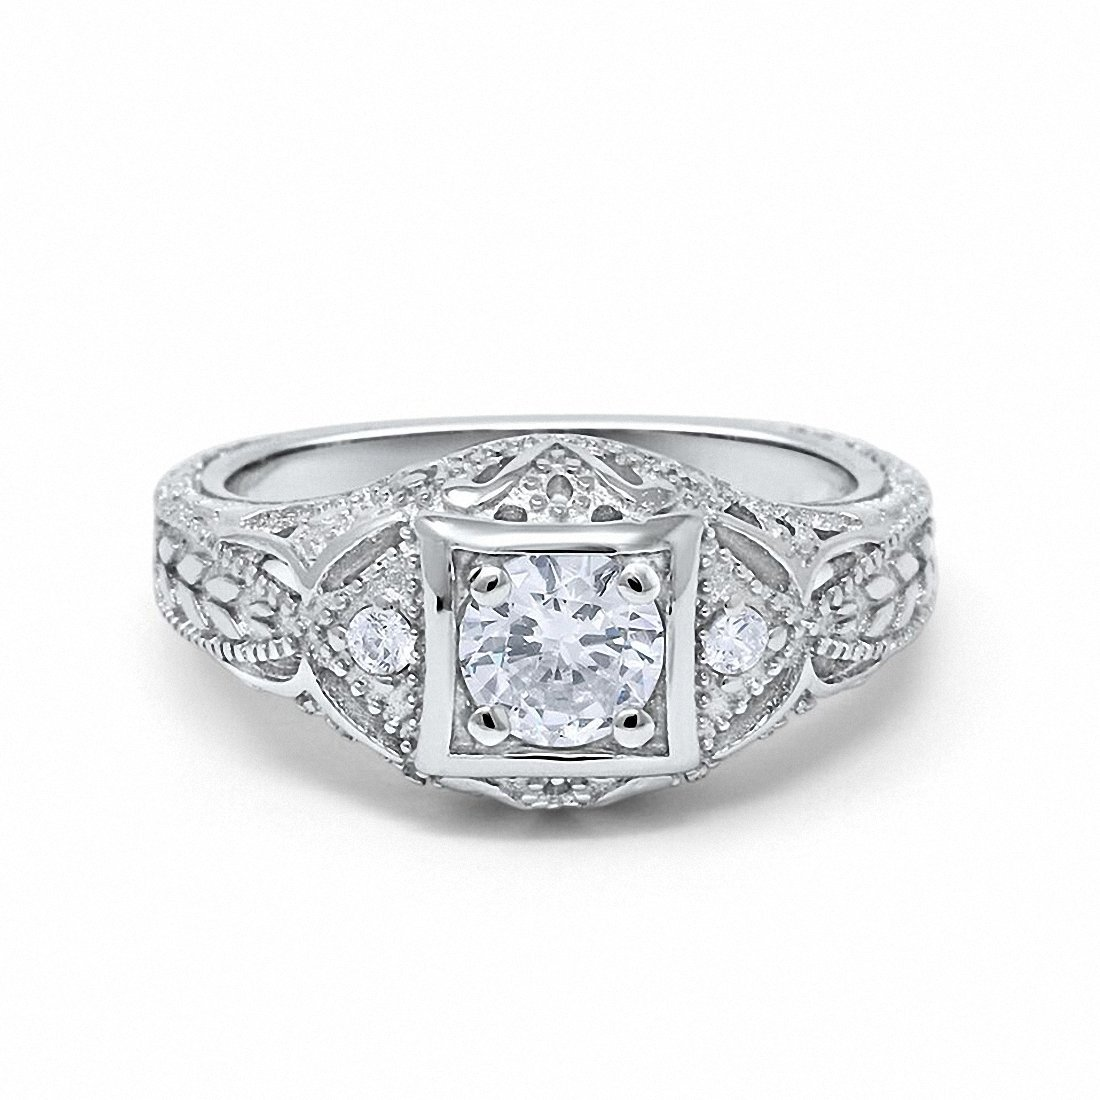 Art Deco Antique Style Wedding Engagement Ring Simulated Round Cubic Zirconia 925 Sterling Silver,Size-10